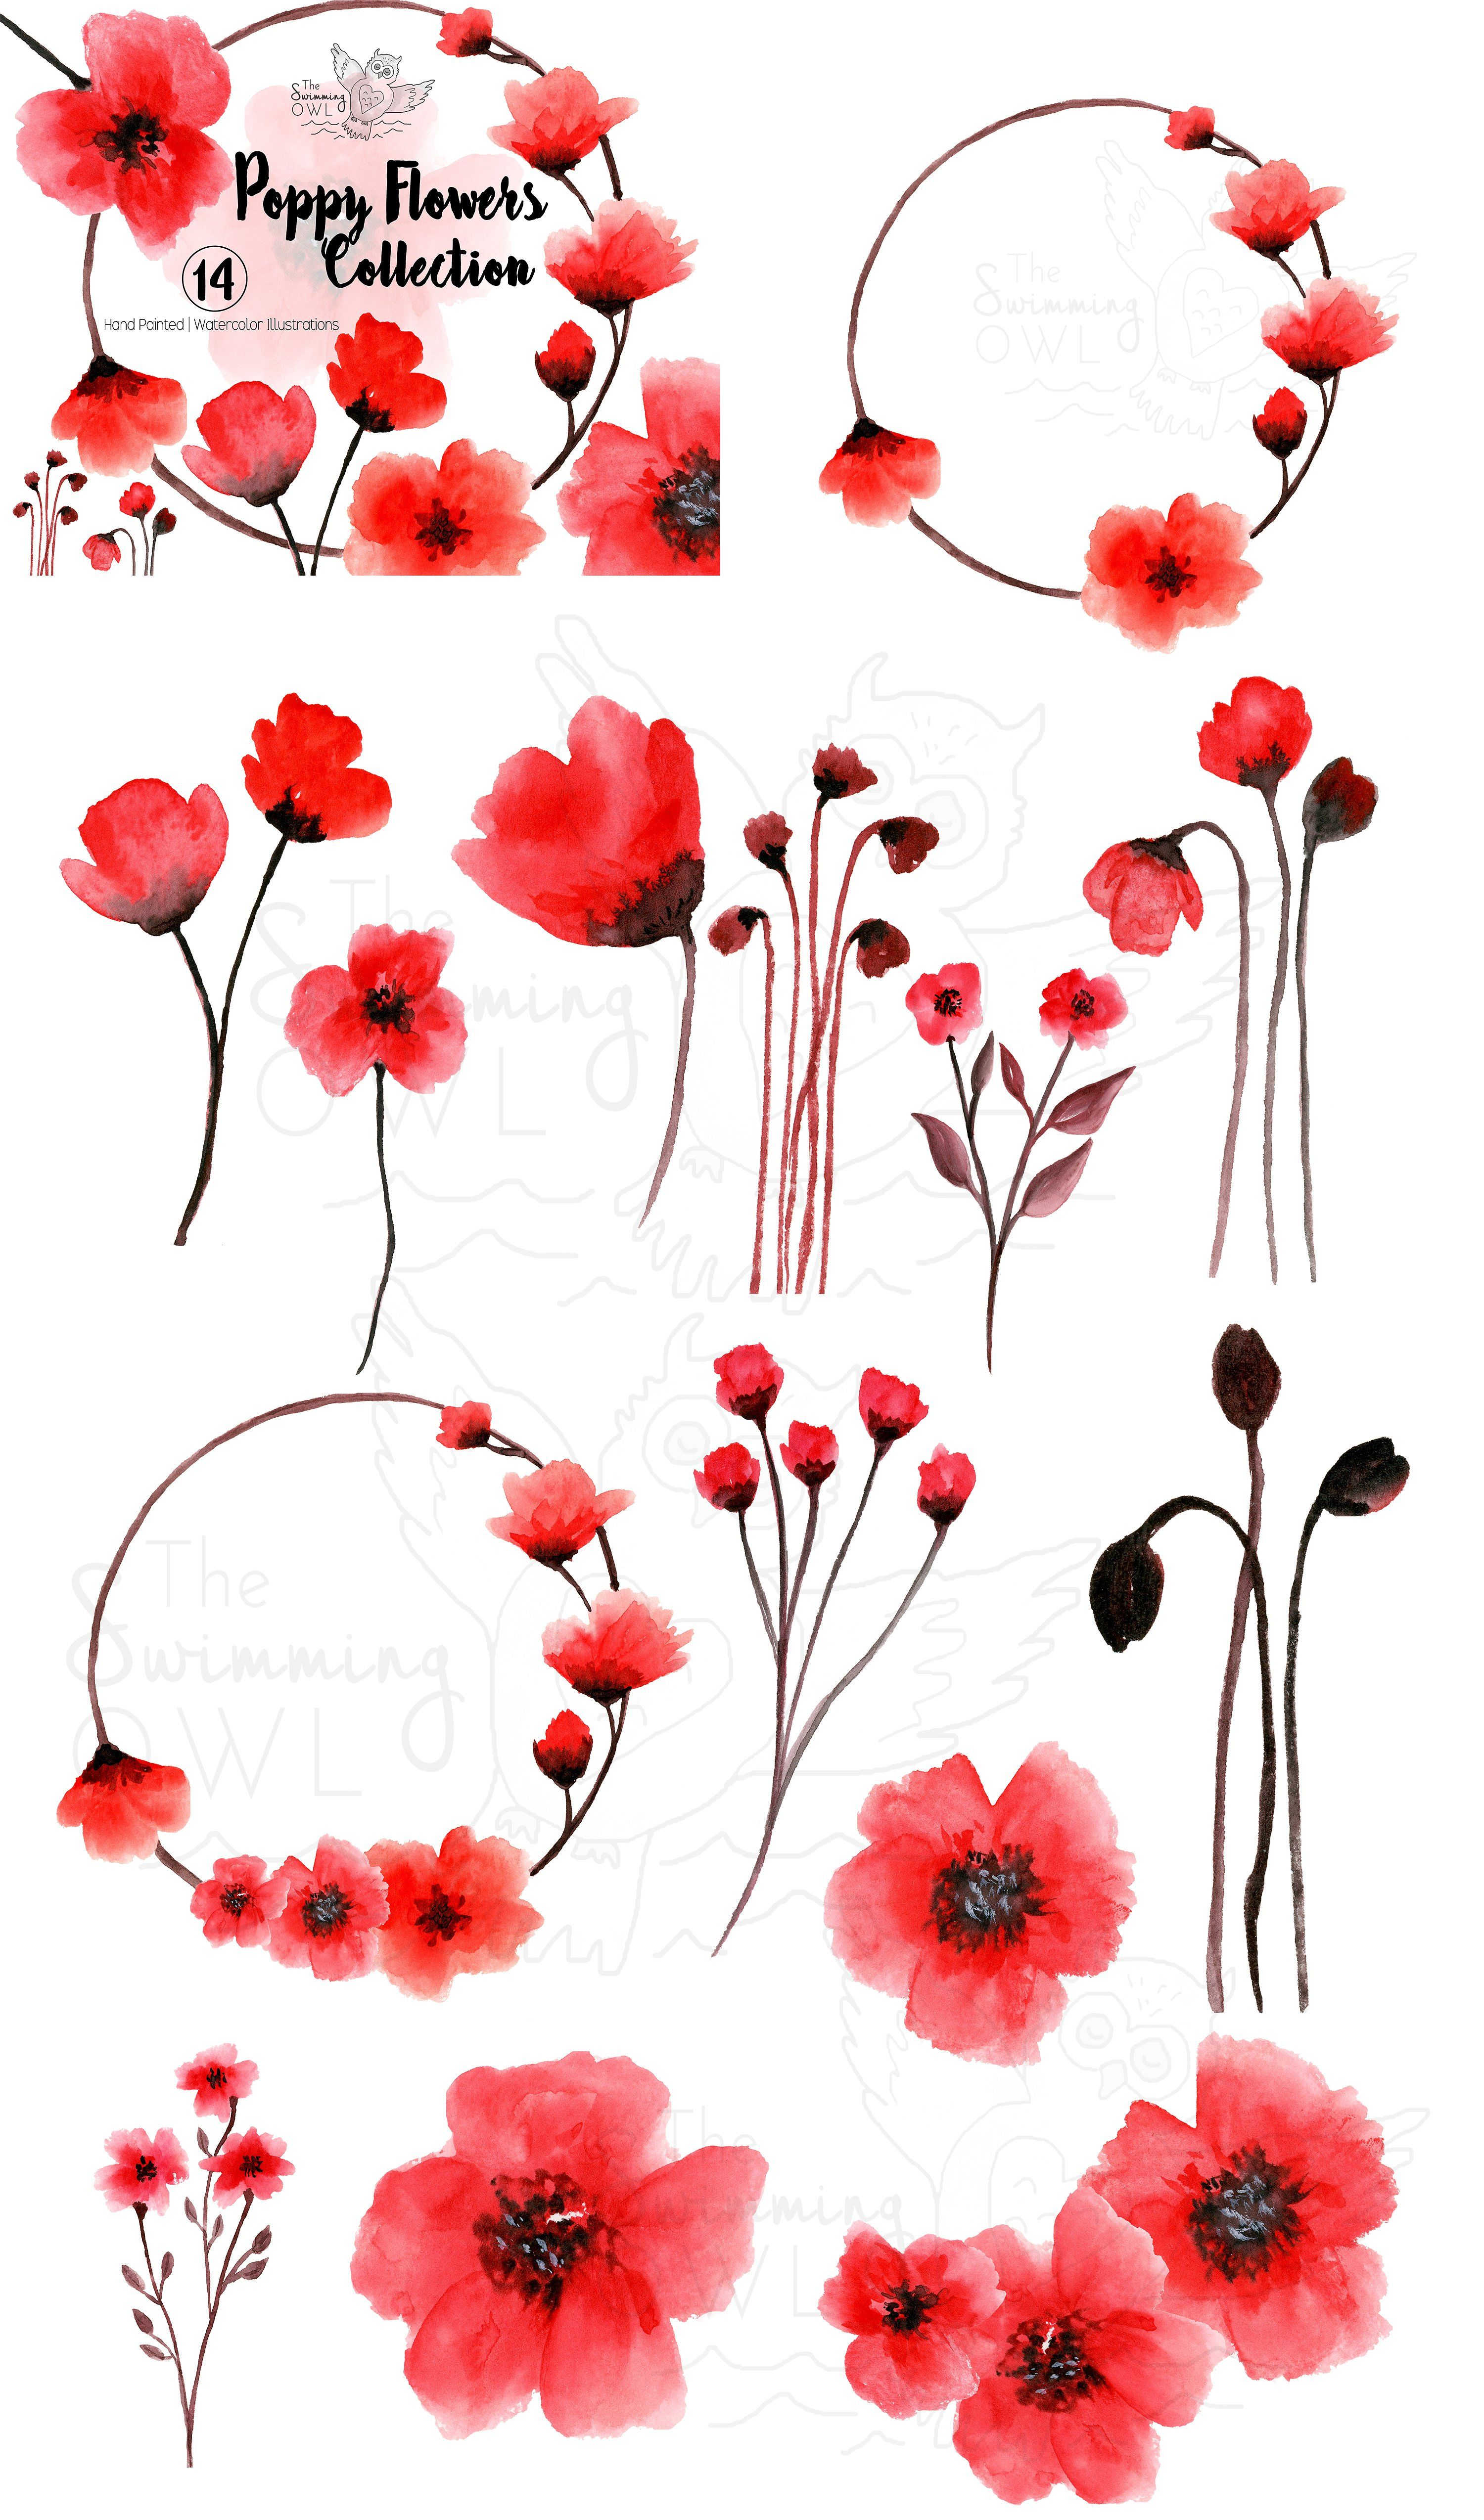 Poppy Flowers Watercolor Clipart #Vibrant#hand#printable.